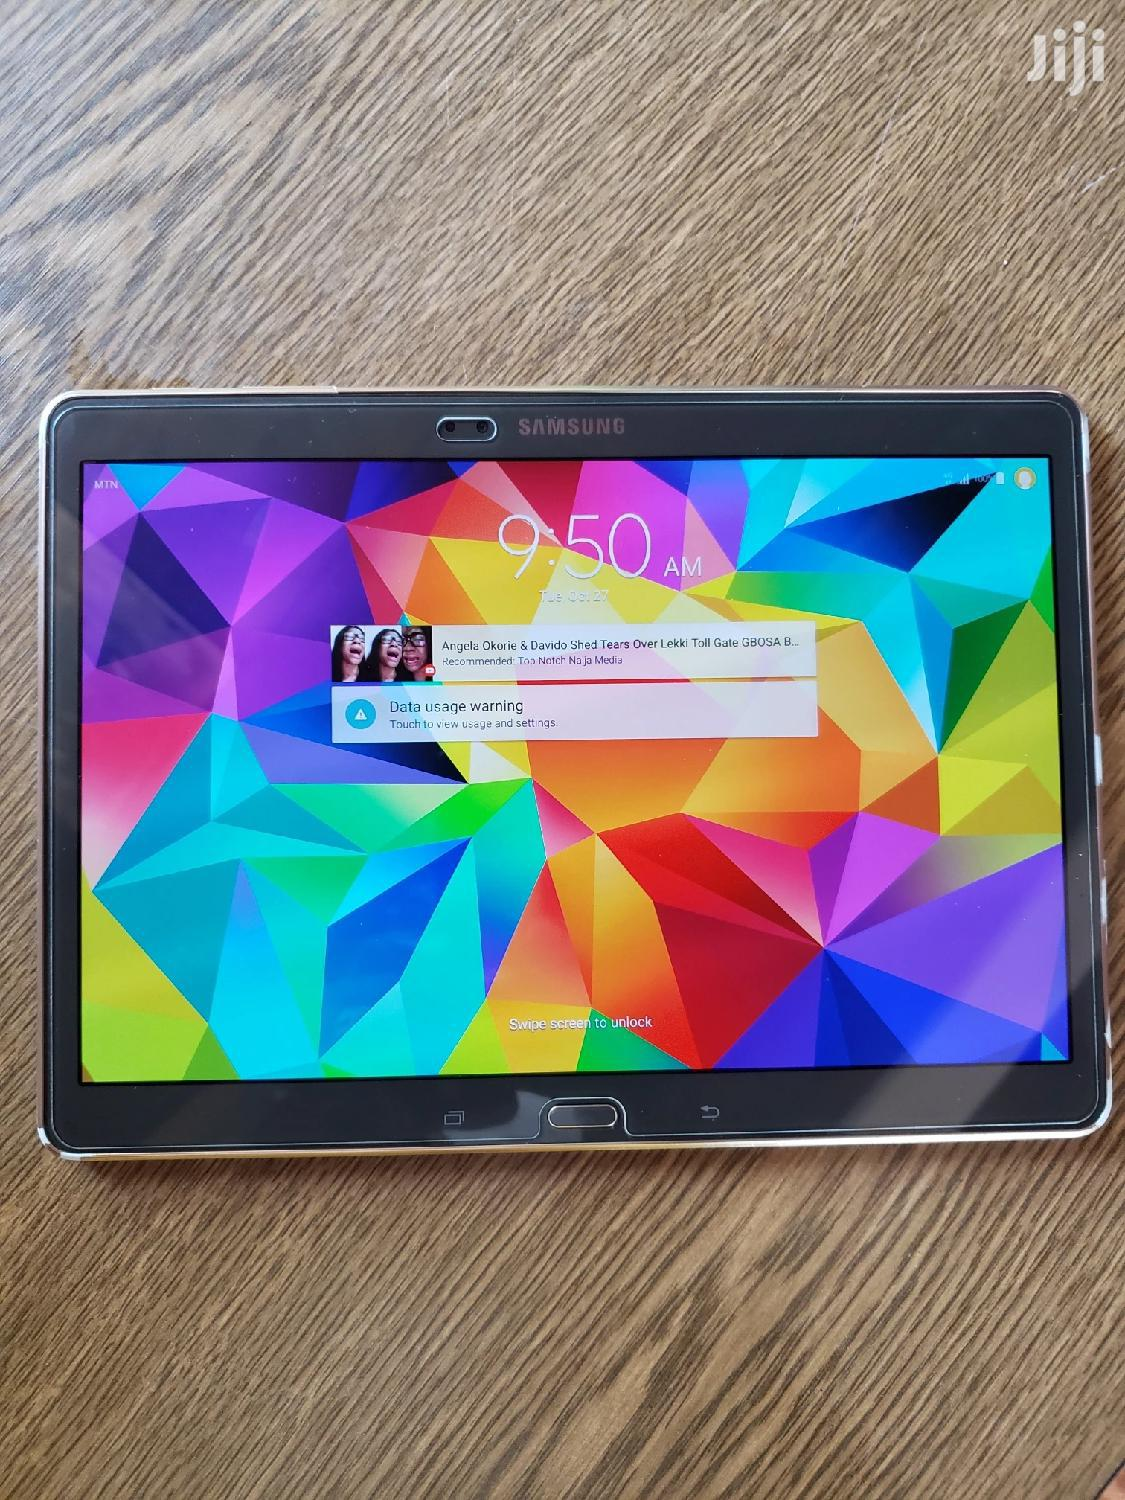 Samsung Galaxy Tab S 10.5 LTE 16 GB | Tablets for sale in Teshie-Nungua Estates, Greater Accra, Ghana